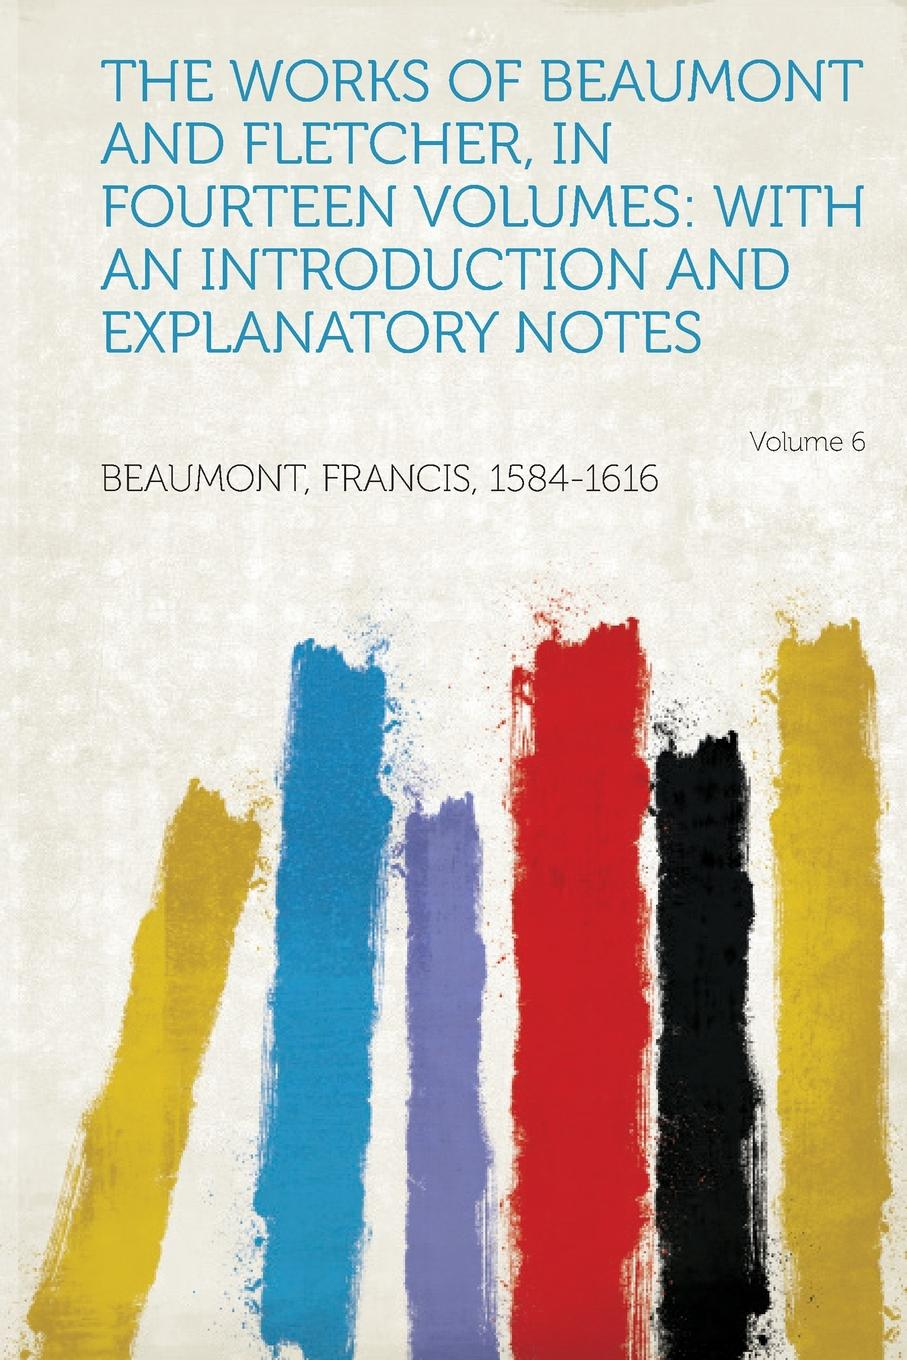 Francis Beaumont The Works of Beaumont and Fletcher, in Fourteen Volumes. With an Introduction and Explanatory Notes Volume 6 francis beaumont the works of beaumont and fletcher in fourteen volumes with an introduction and explanatory notes volume 2